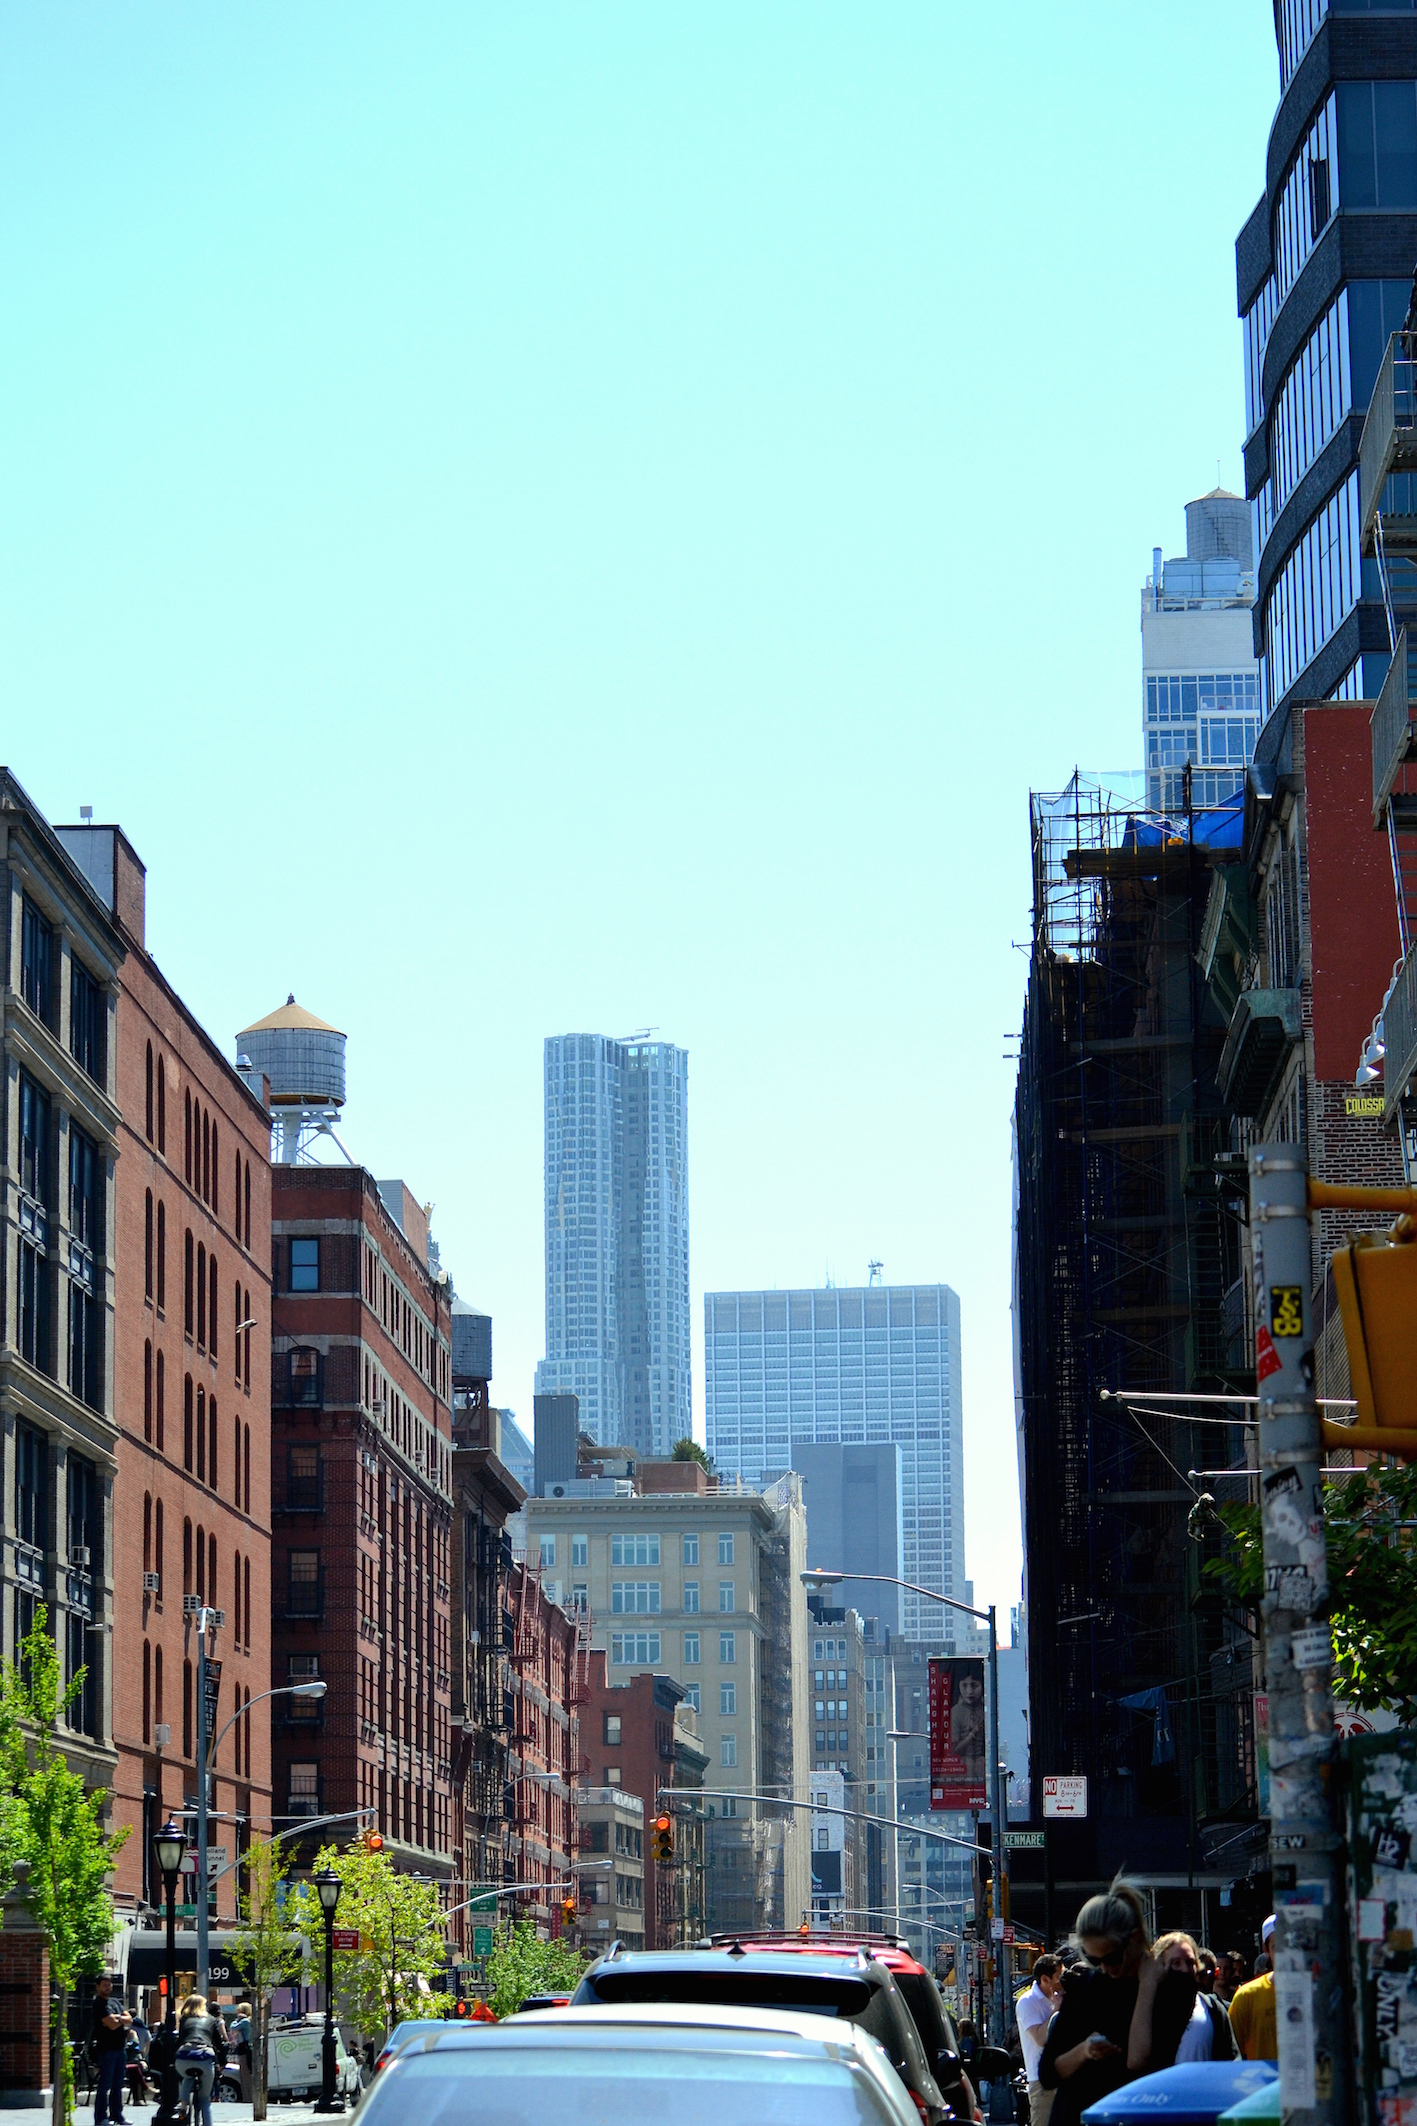 Streets of NYC summer 2016